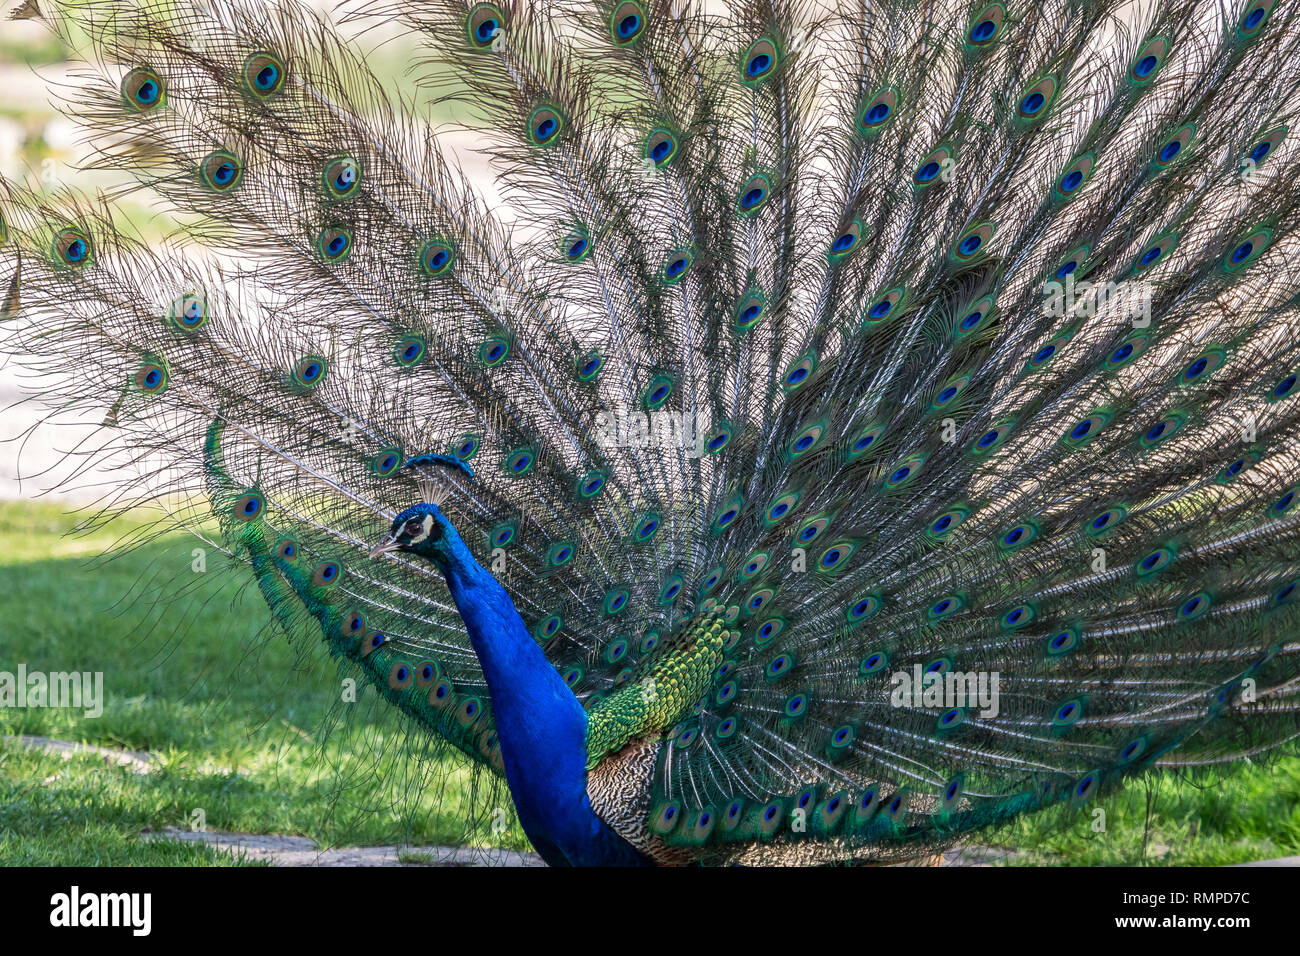 Indian Peacock or Blue Peacock, Pavo cristatus in the zoo - Stock Image